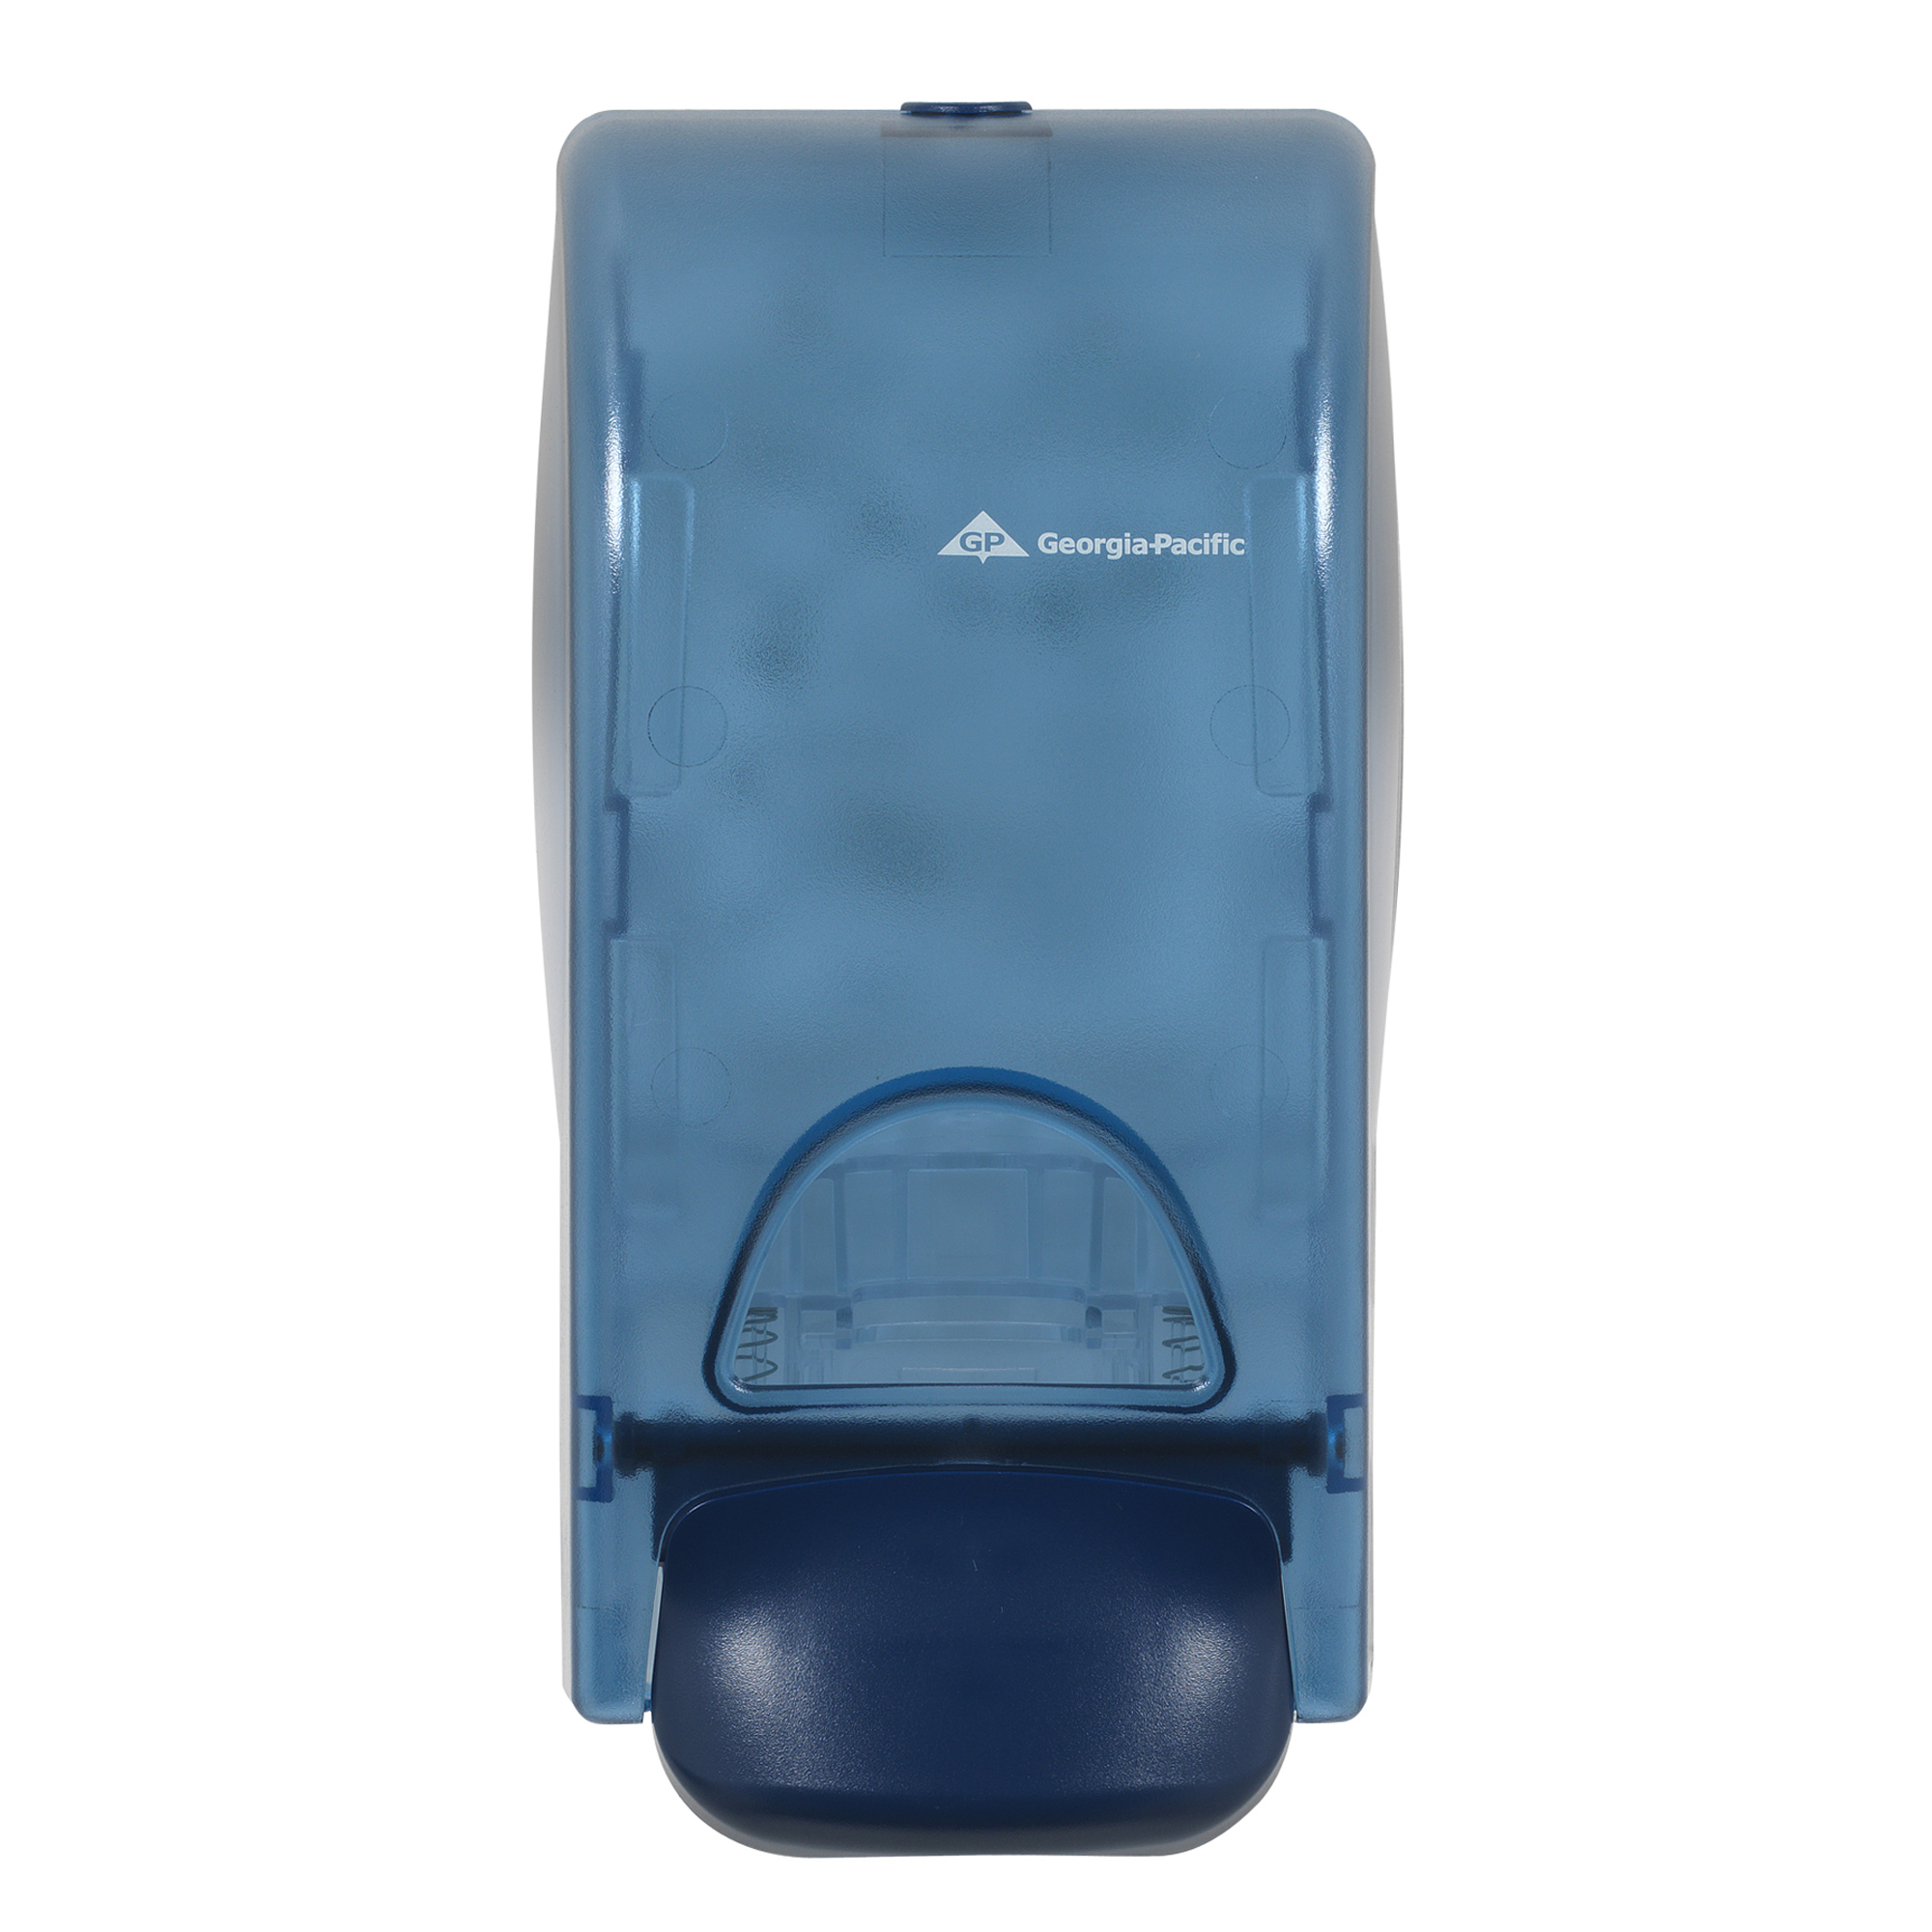 10073310530526 GP Splash Blue Mechanical 1200 ml Soap Dispenser